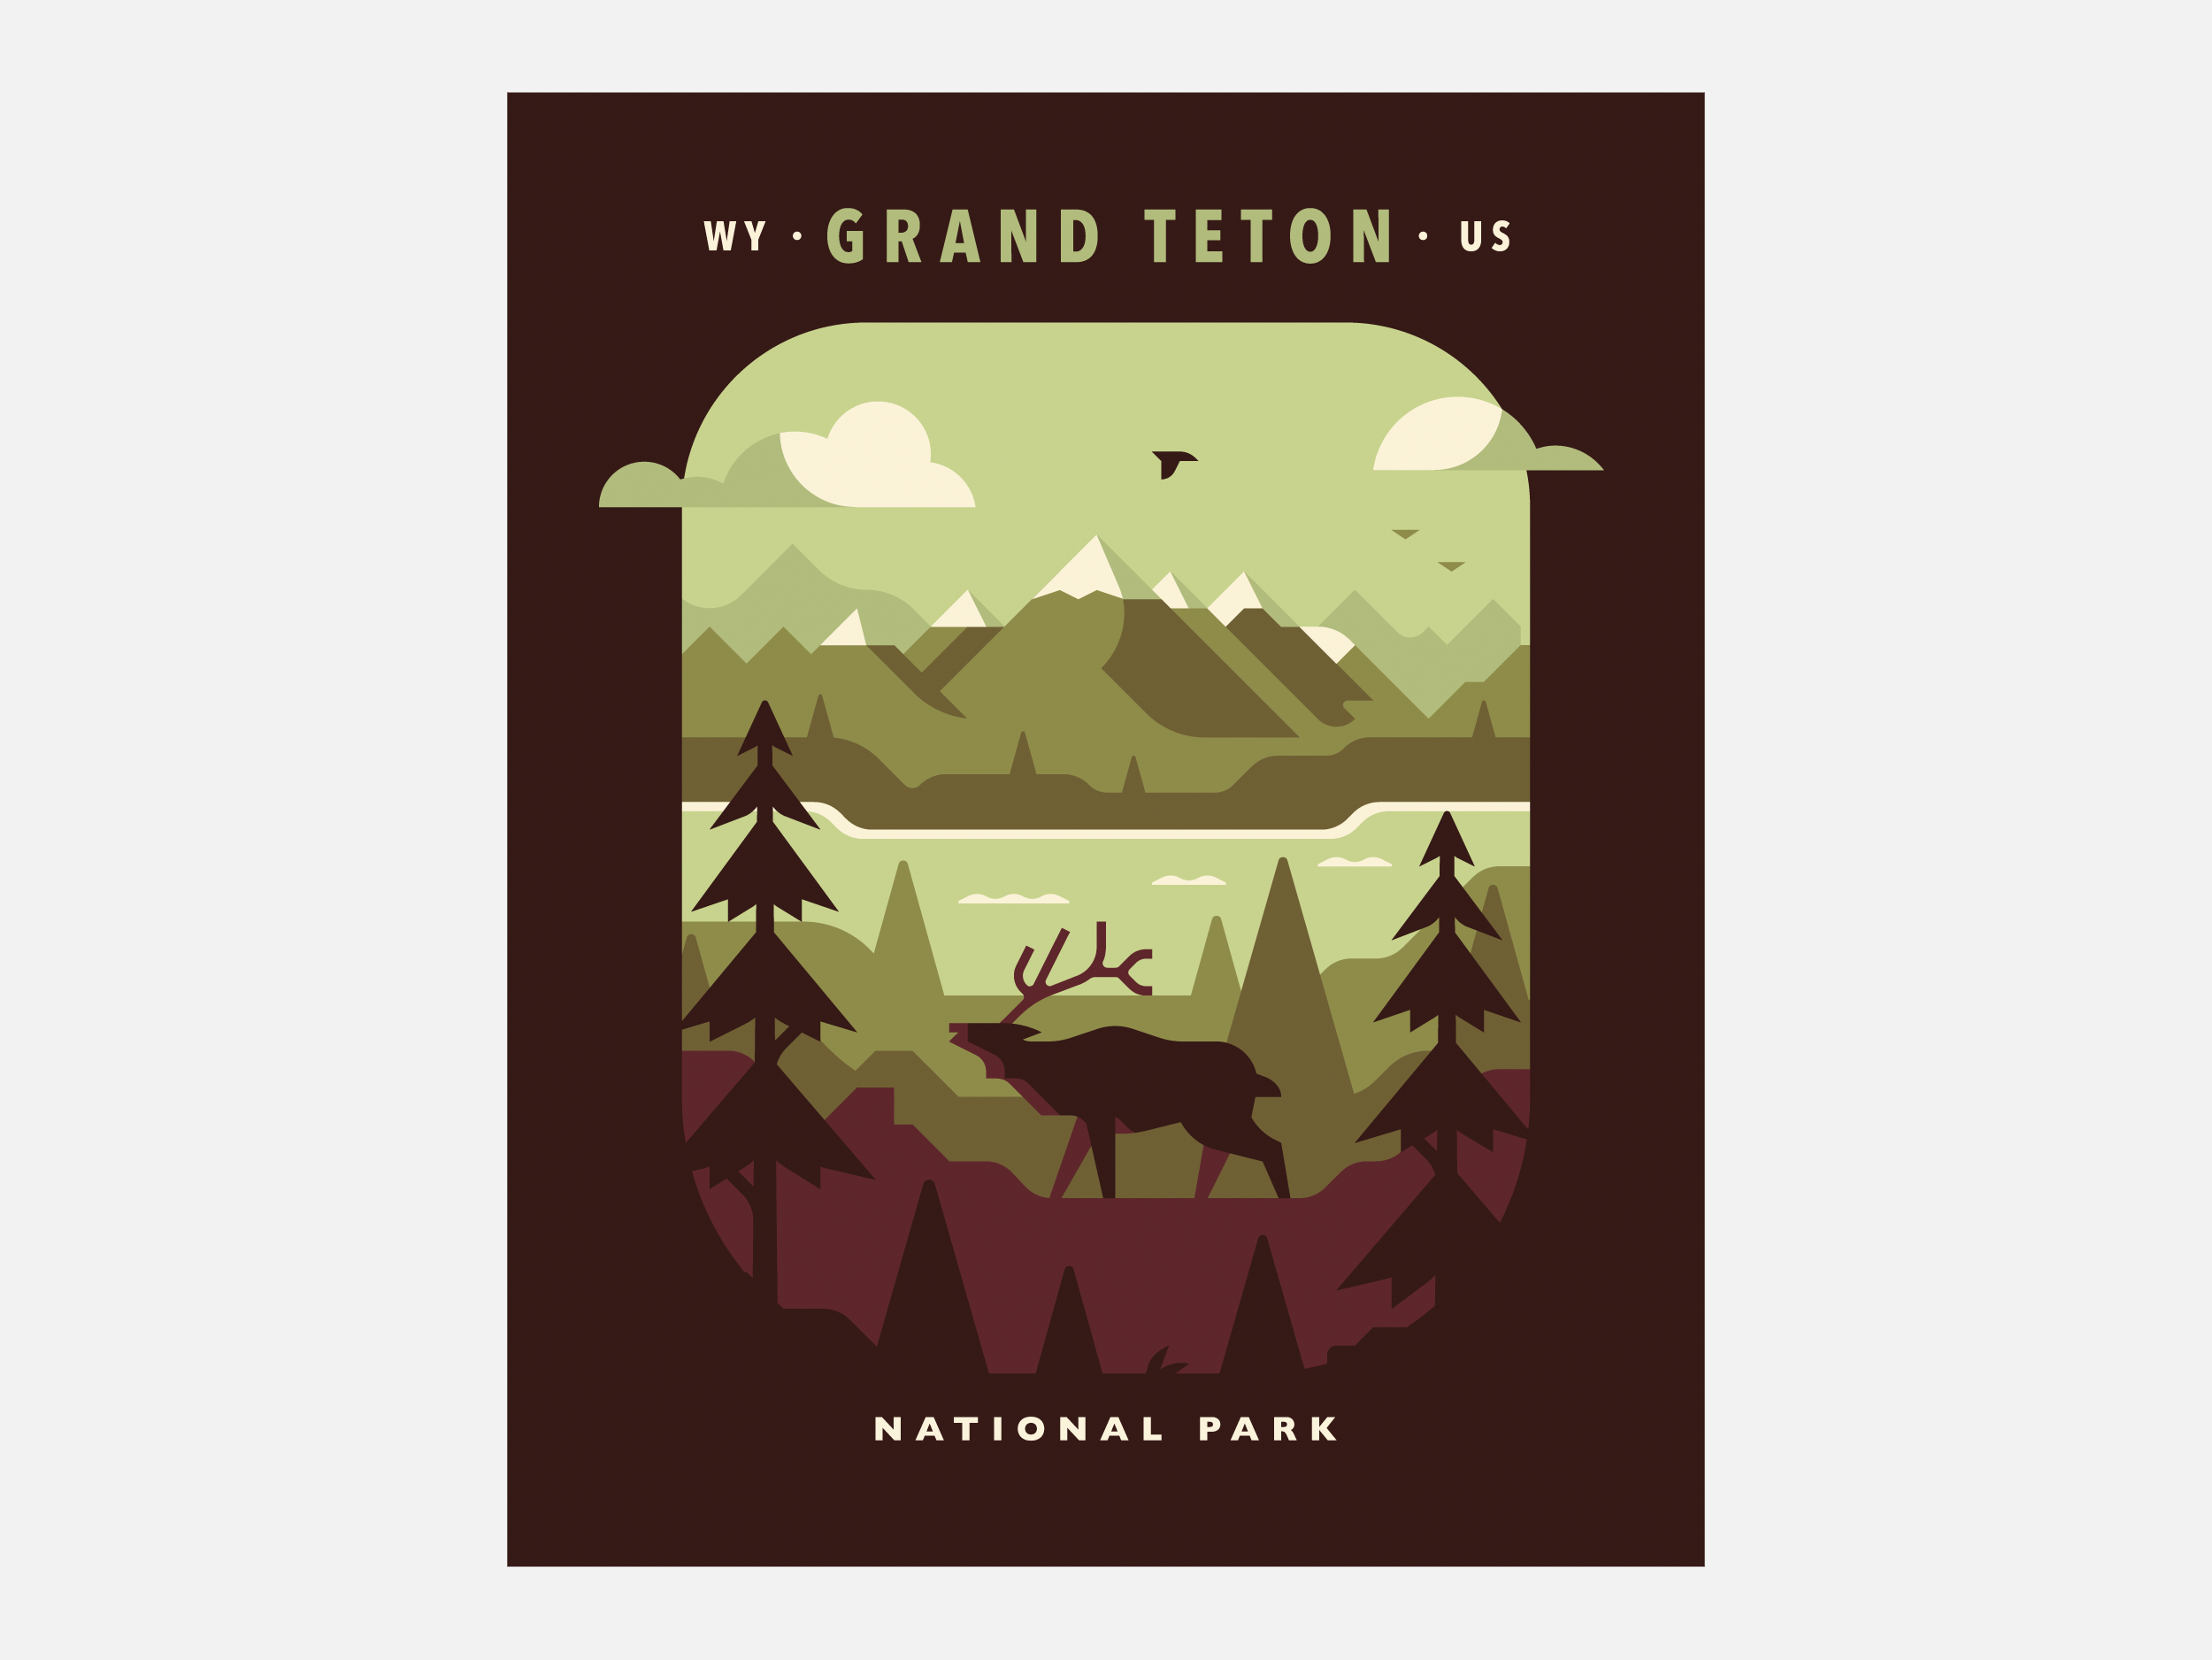 Grand Teton National Park poster design by Matt Anderson and Canopy Design. Limited color illustration of mountains, lake, trees and an elk.